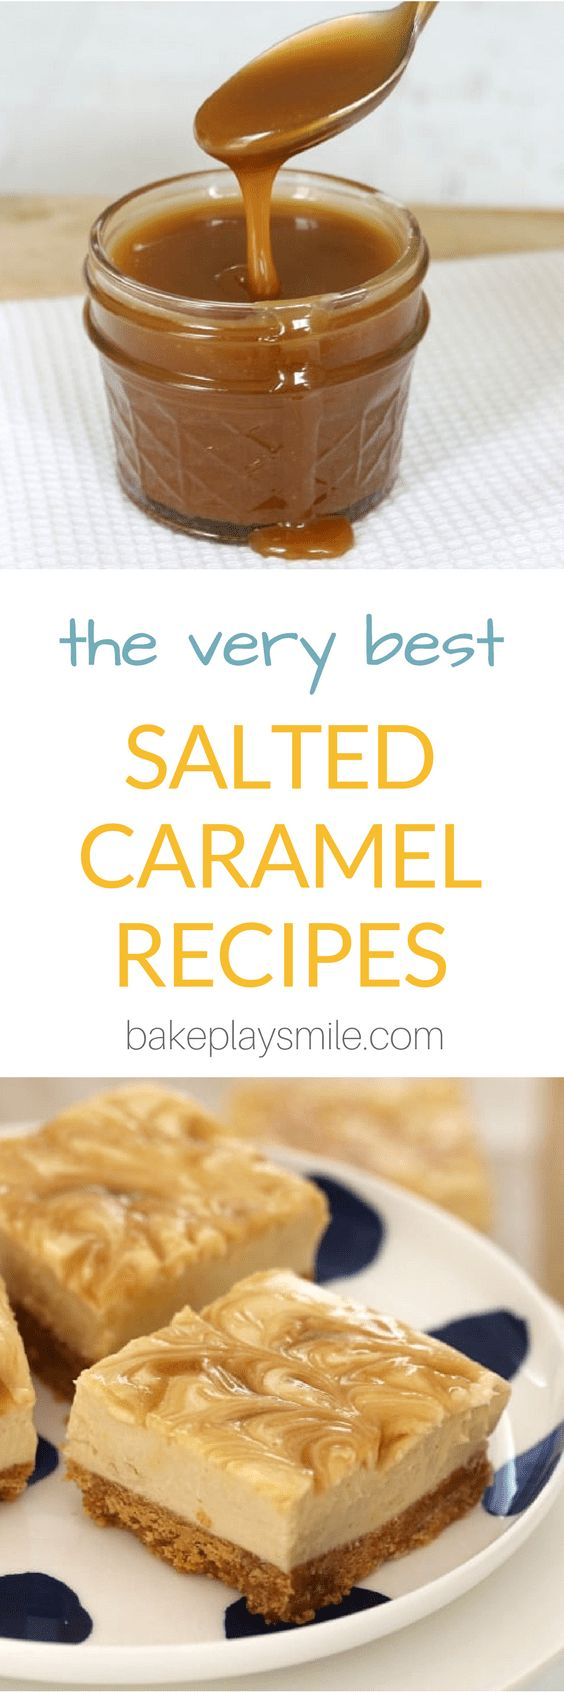 The ultimate collection of the VERY BEST SALTED CARAMEL RECIPES!! With everything from cheesecake to mud cake, brownies to slices, homemade sauce and frosting… YUM!  #salted #caramel #best #recipes #easy #thermomix #conventional #yum